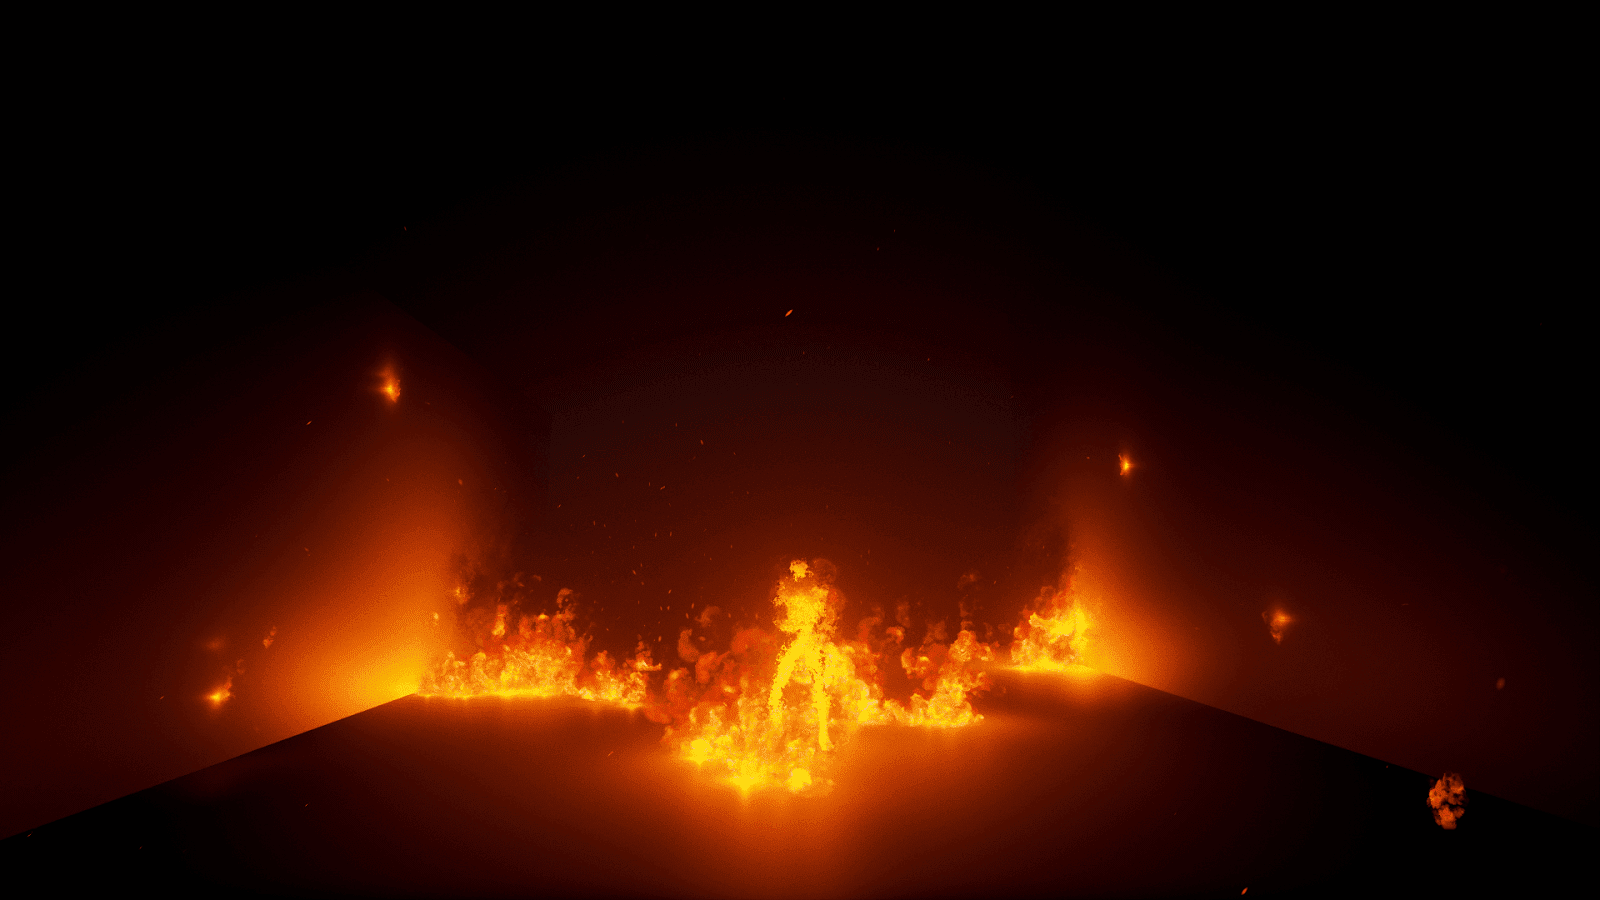 The Explosions Mega Pack for Unreal Engine 4 | Computer